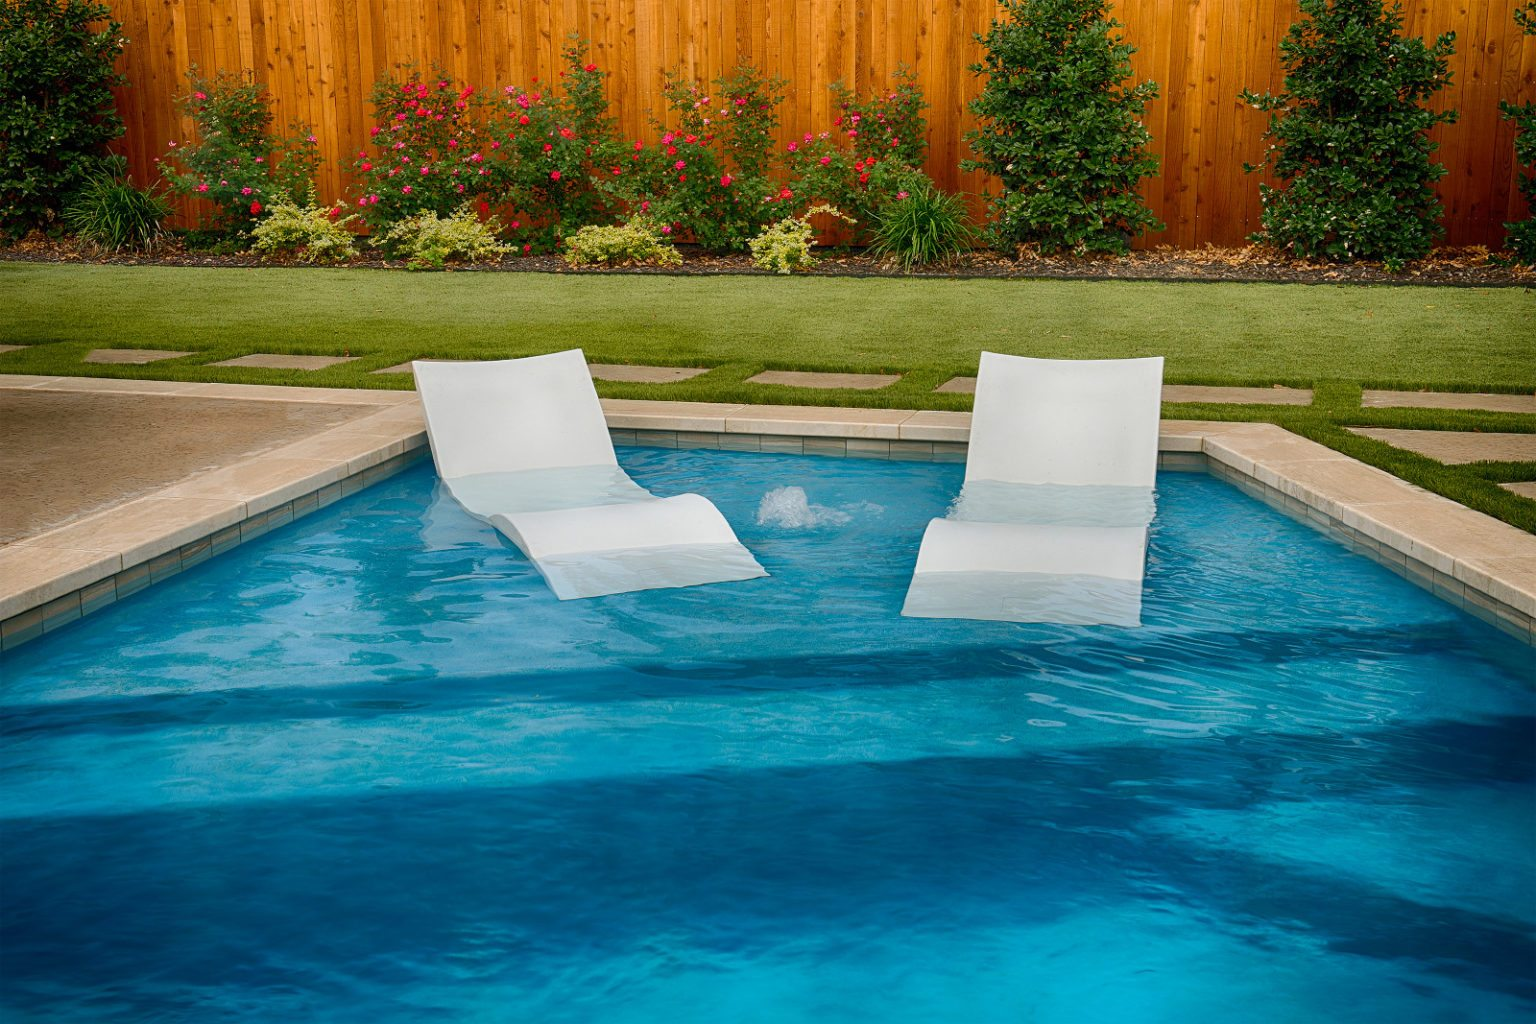 This image shows one of our favorite accessory pieces for swimming pools - Ledge Loungers! These pieces of pool furniture are water proof, stable and perfect add-on pieces for any splash pad. It gives the swimmer a perfect place to cool off, read a book or even enjoy a nice glass of iced tea while catching some rays!